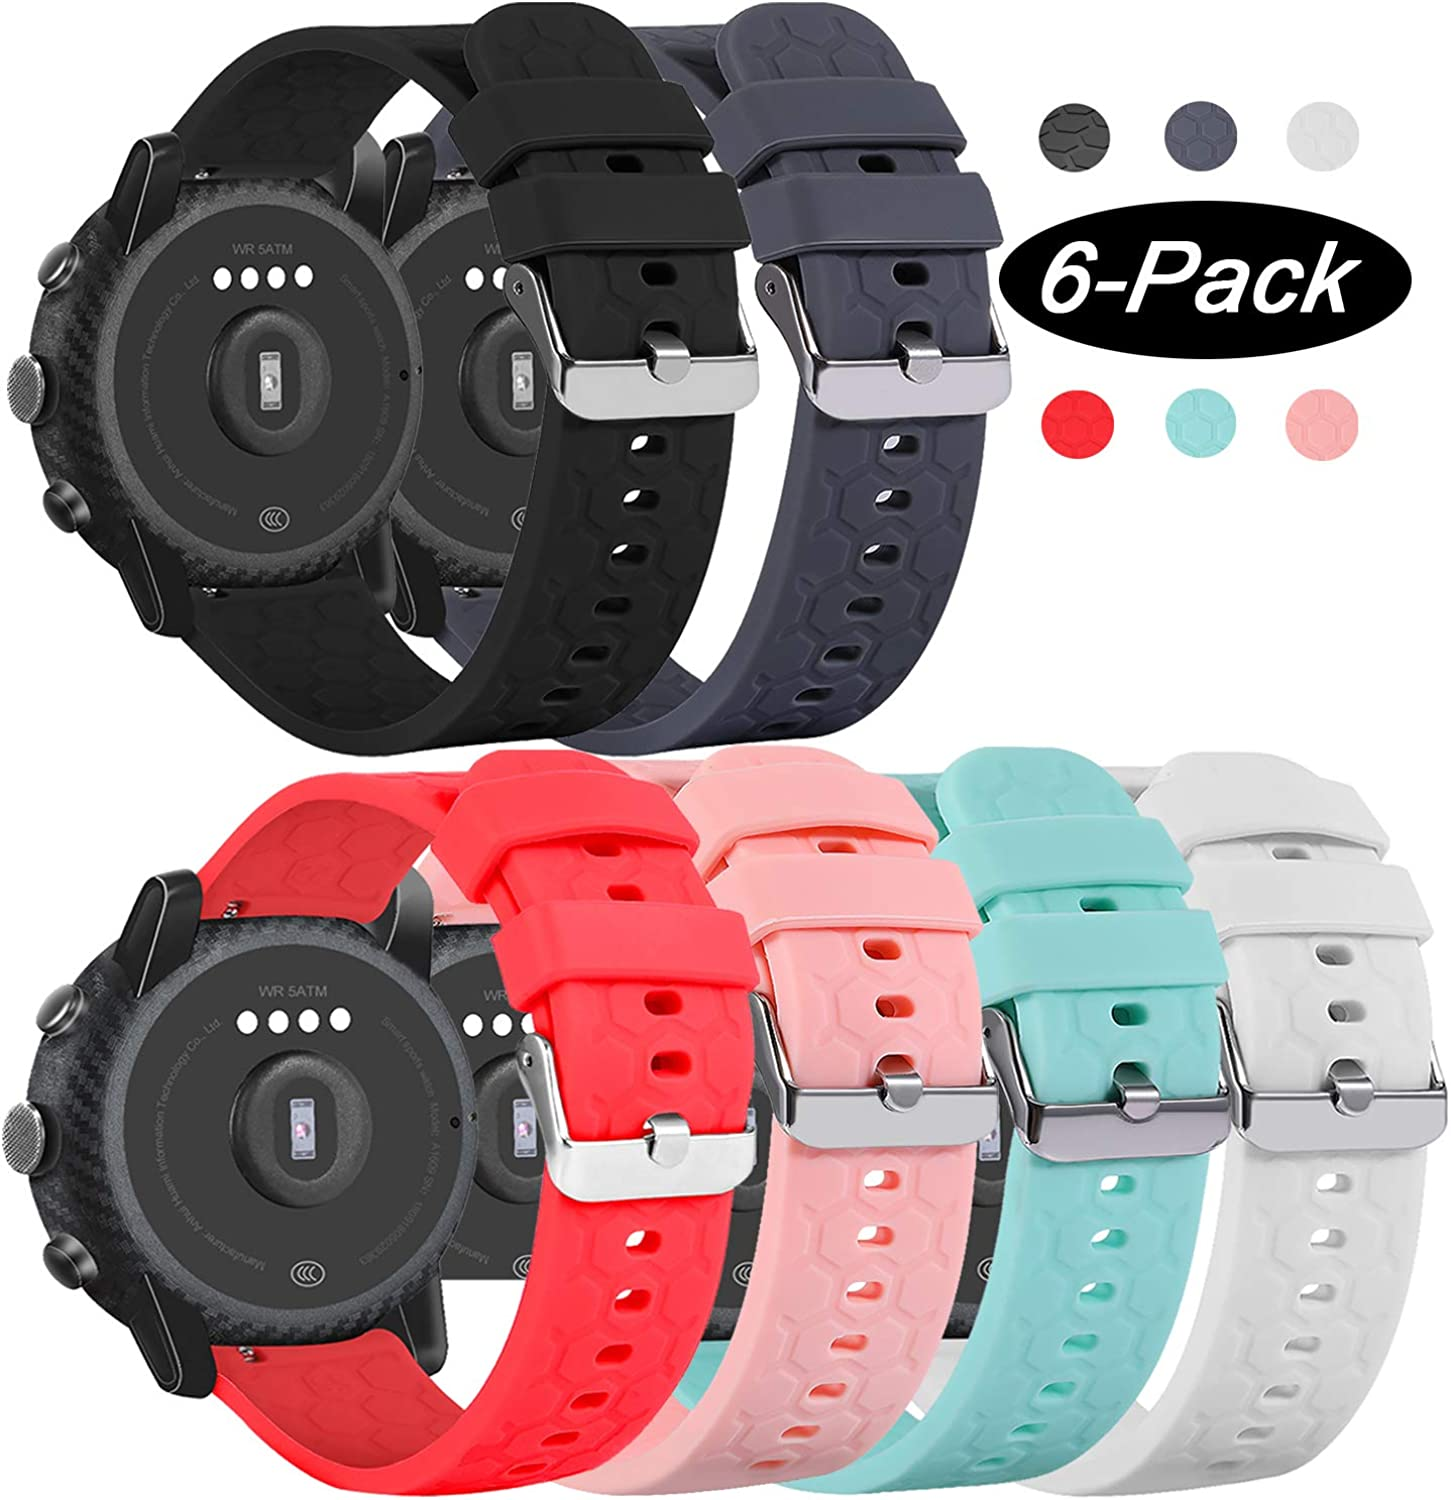 RuenTech Compatible with Fossil Gen 5, Explorist Gen 4 Band 22mm Silicone Sport Straps Soft Wristbands for Fossil Gen 5 Julianna/Carlyle HR Smartwatch